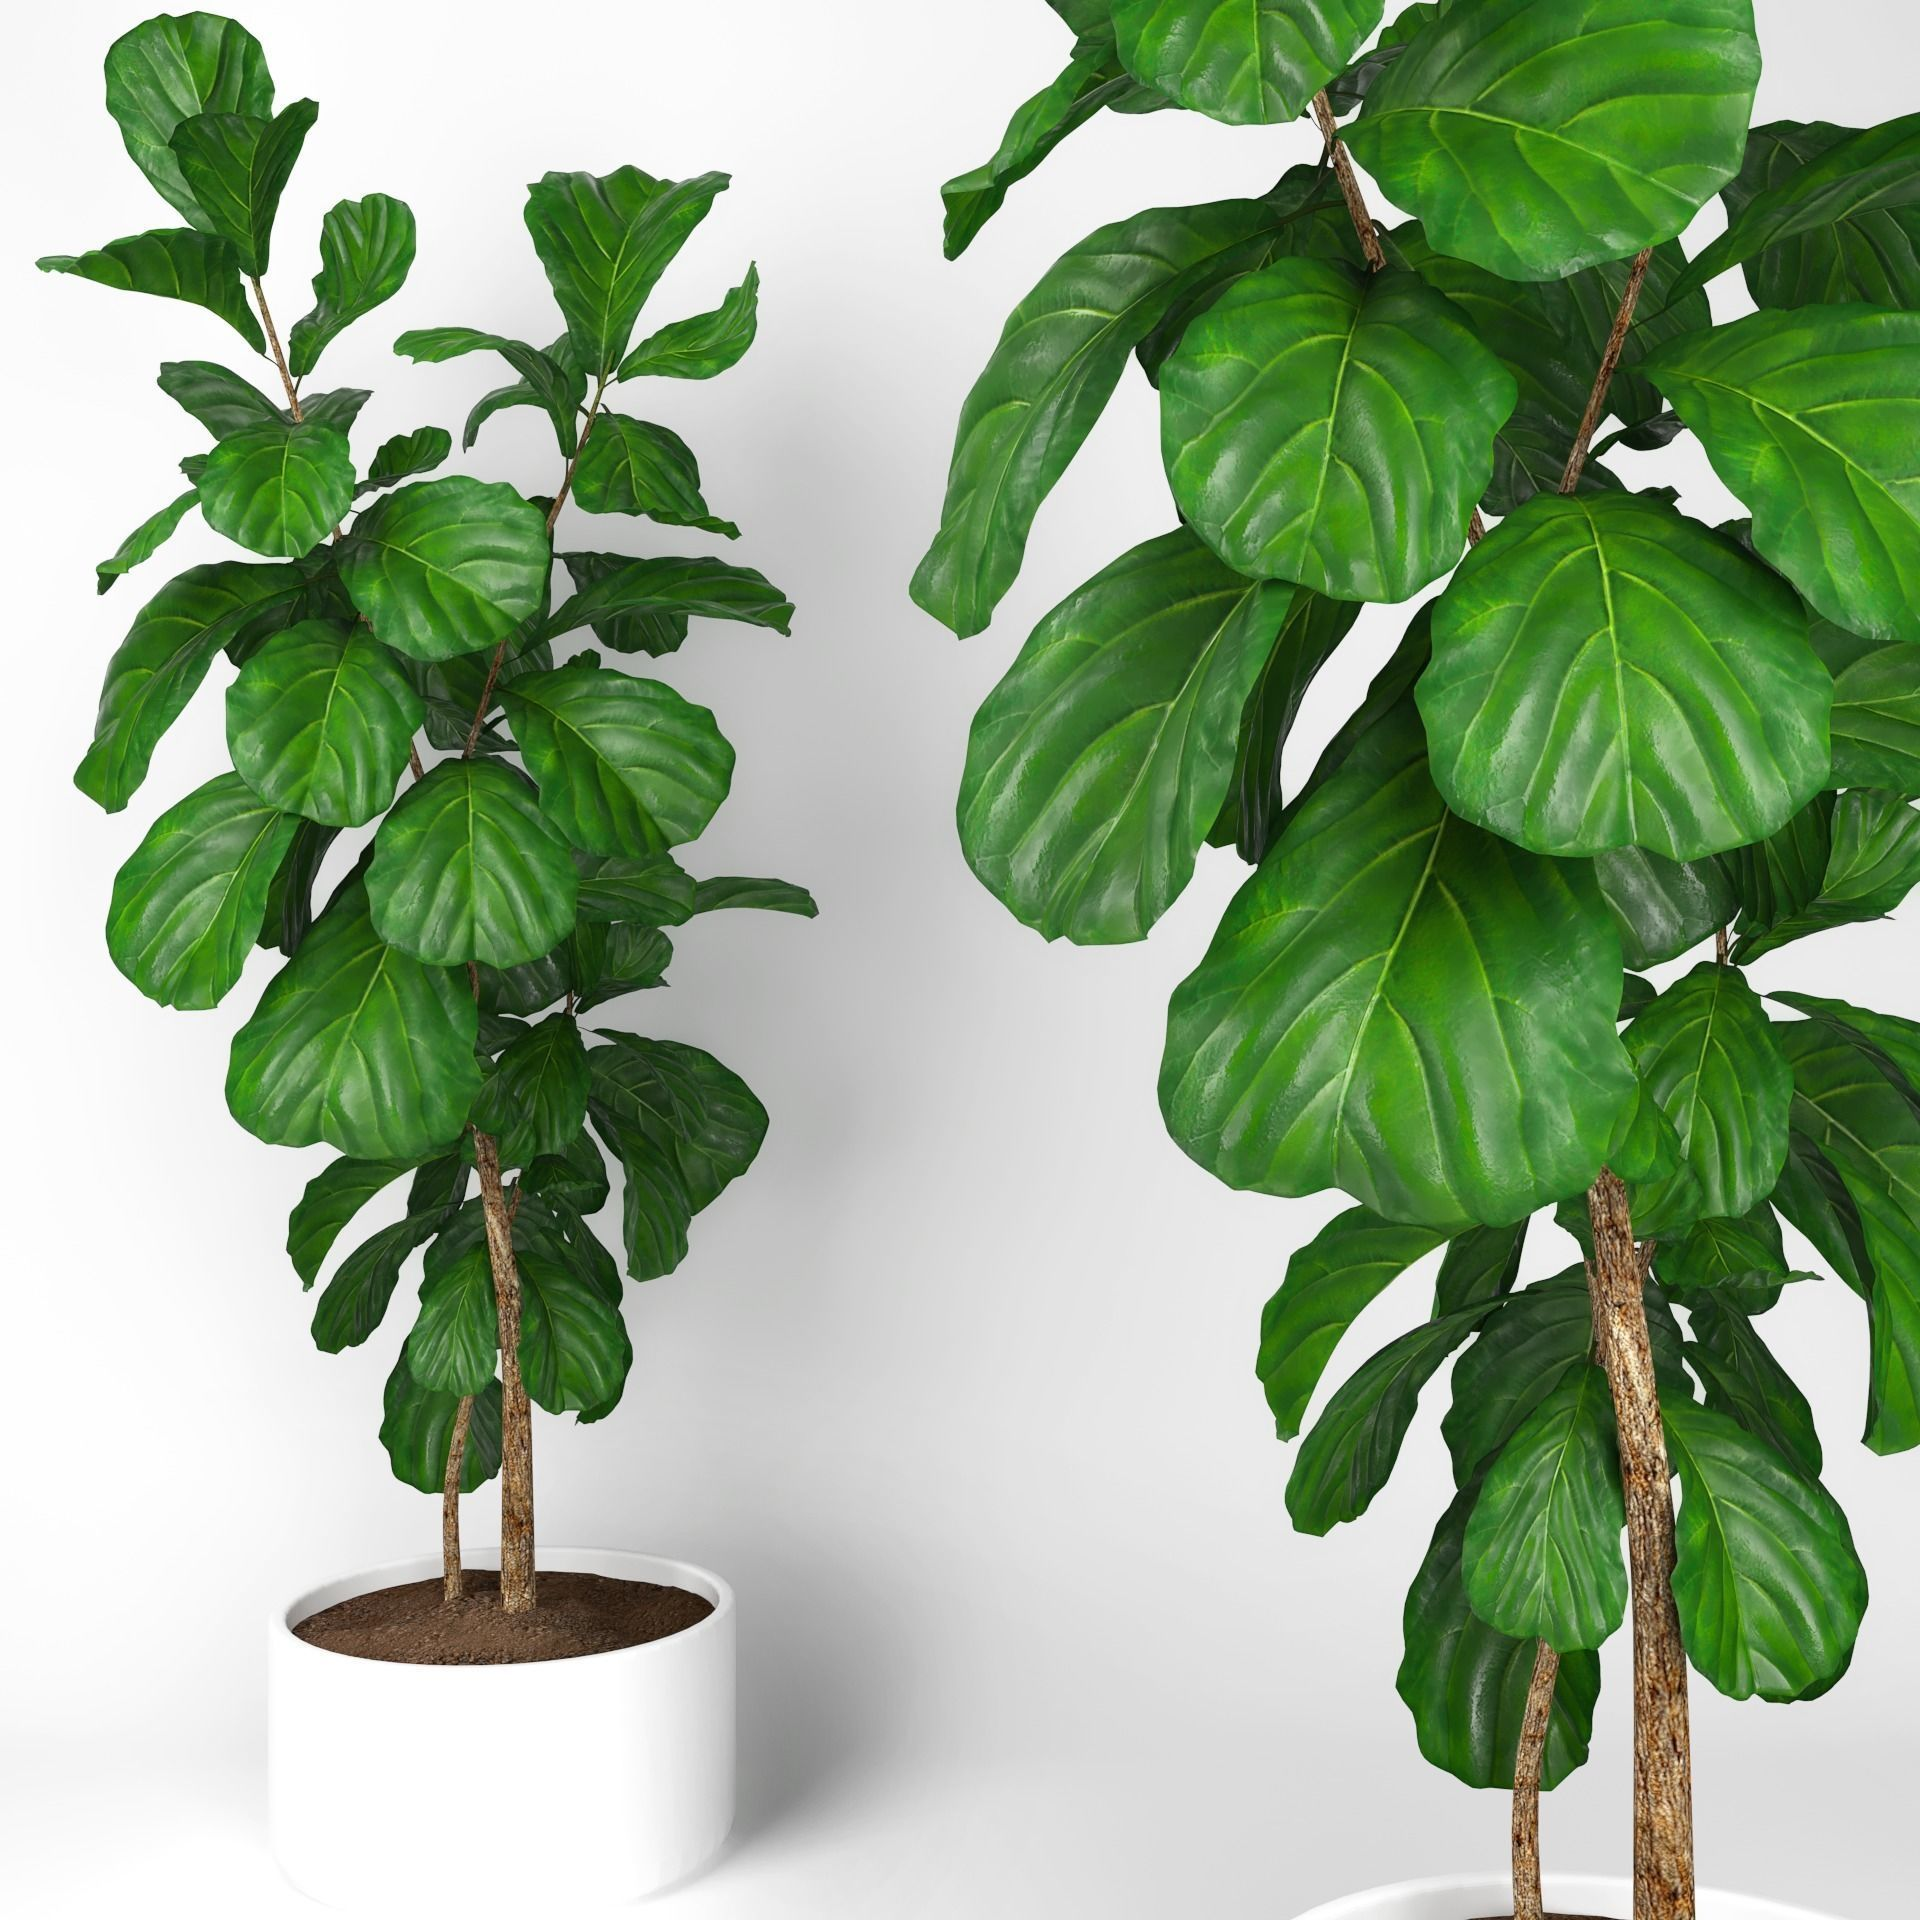 Fiddle Leaf Fig Tree Fiddle Leaf Fig Tree Image Home Garden And Tree Rtecx Com